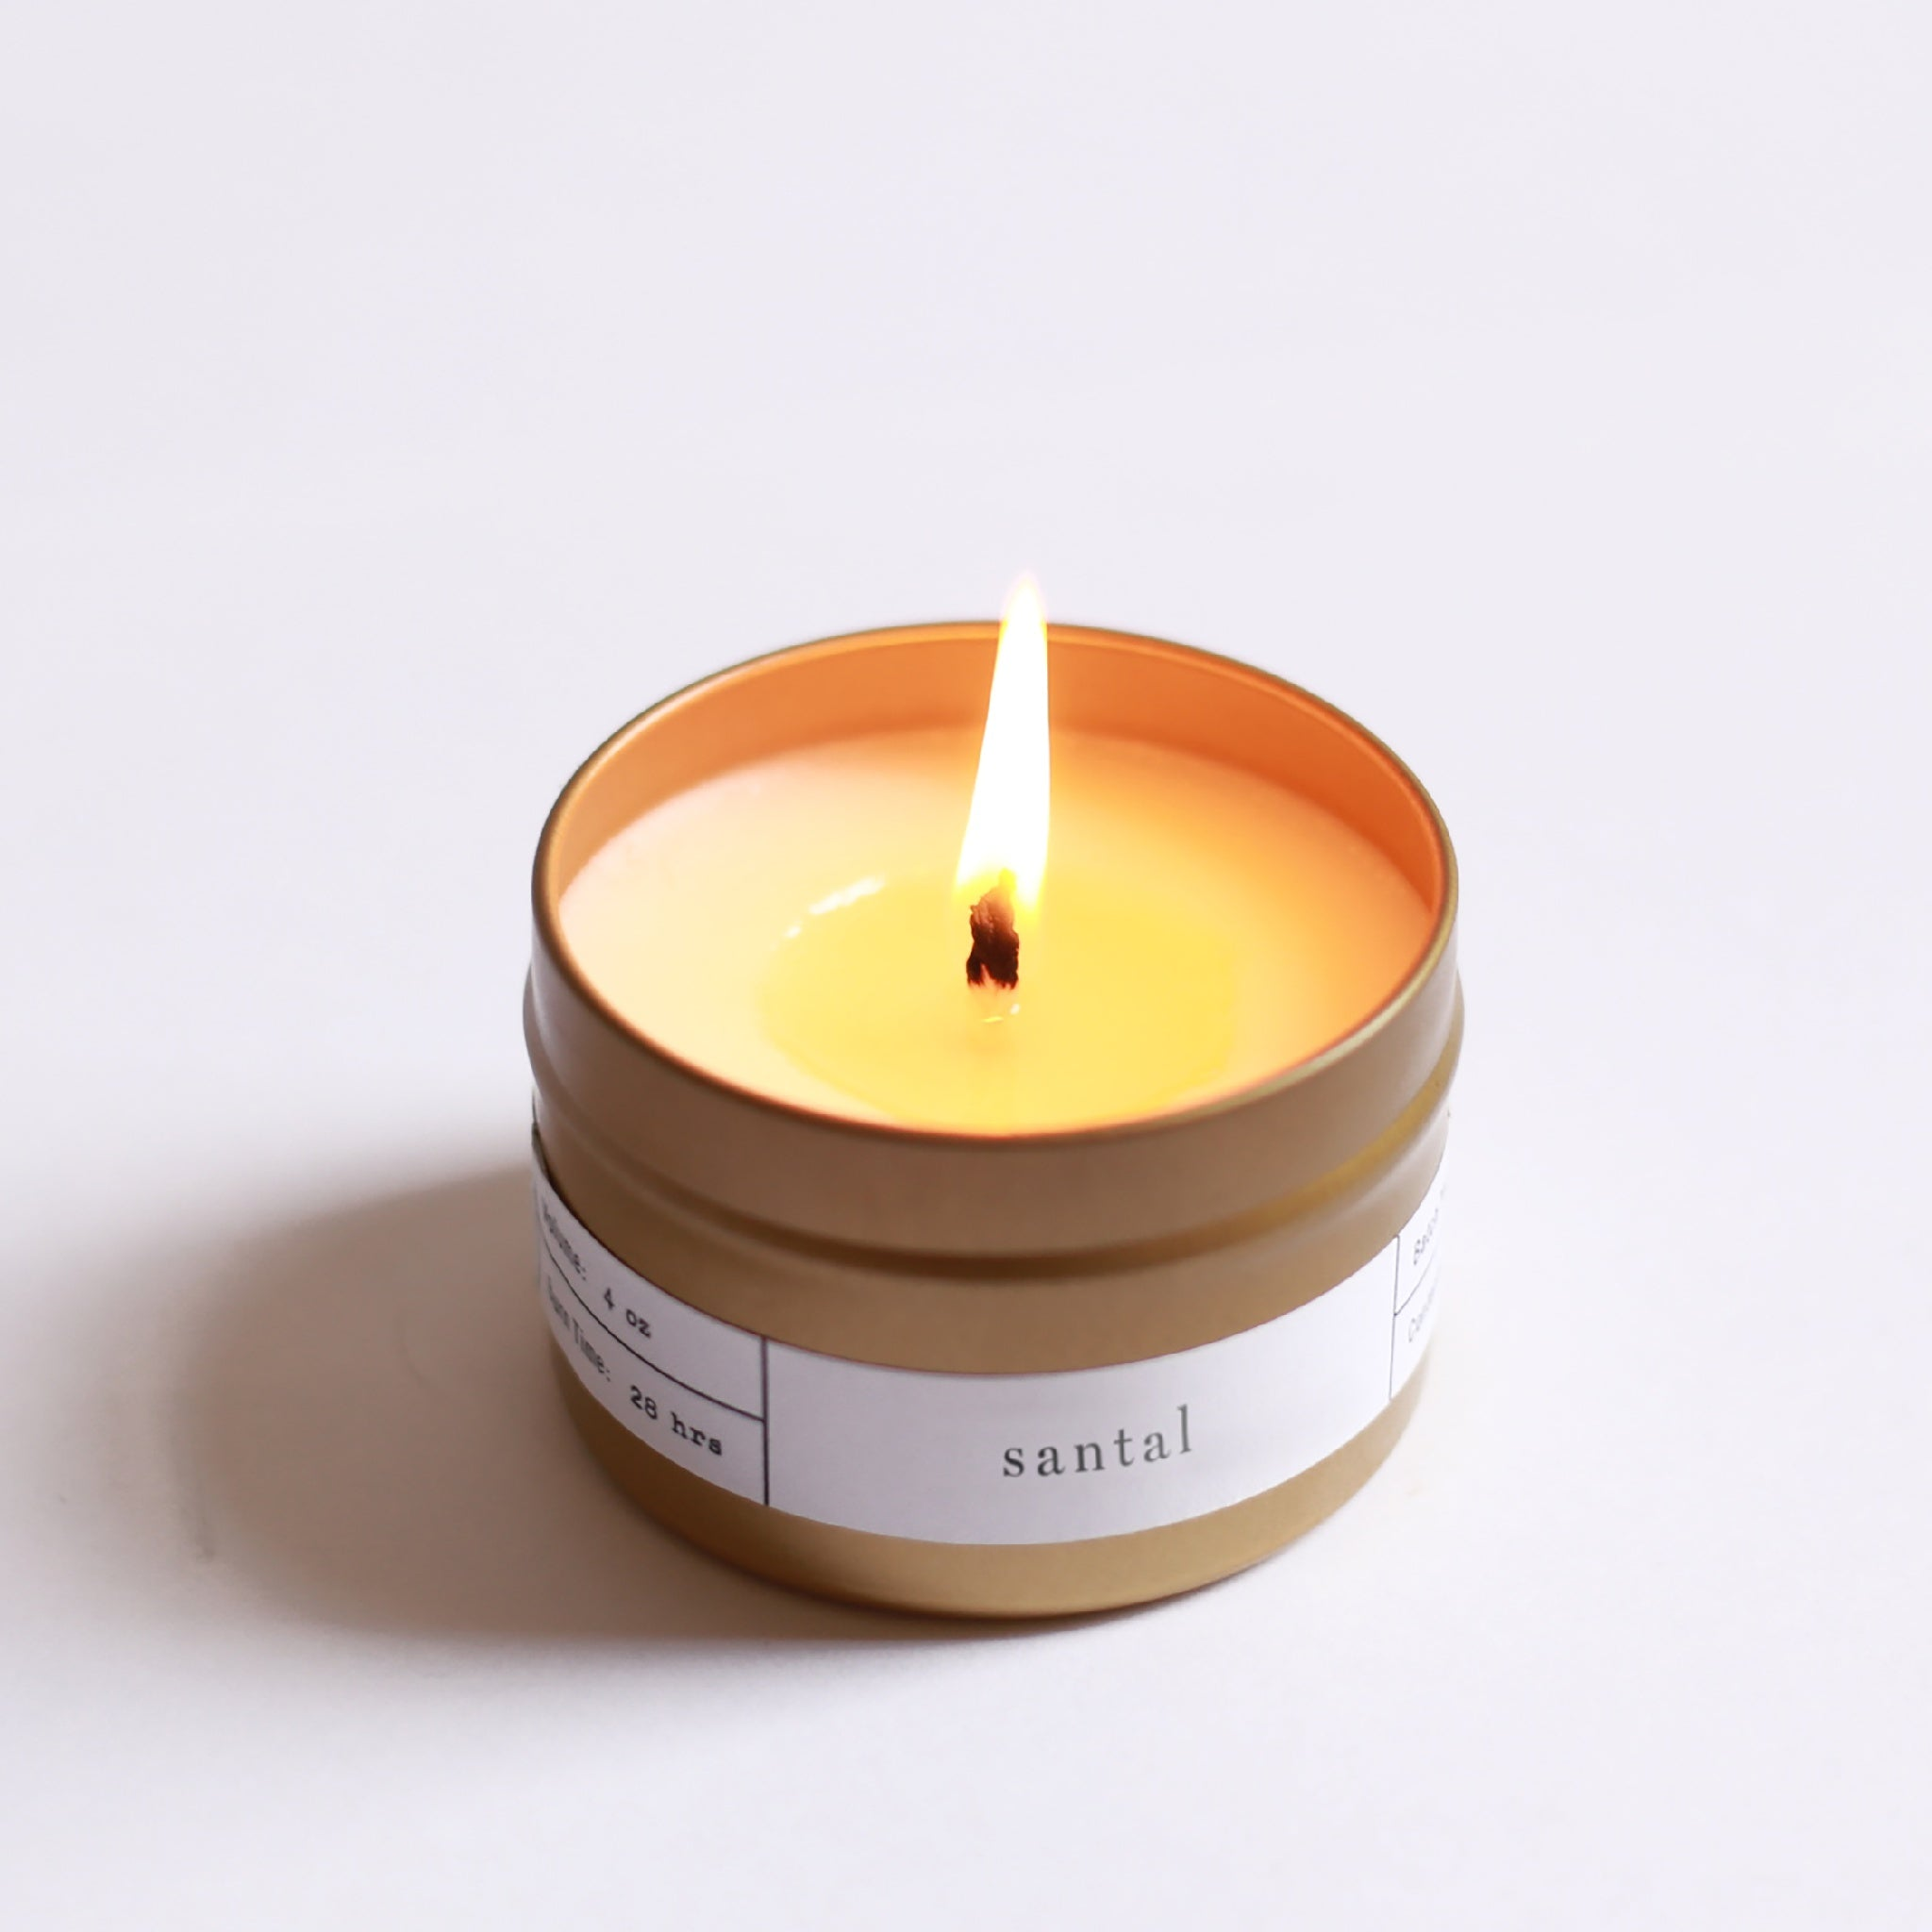 Santal Luxury Candle